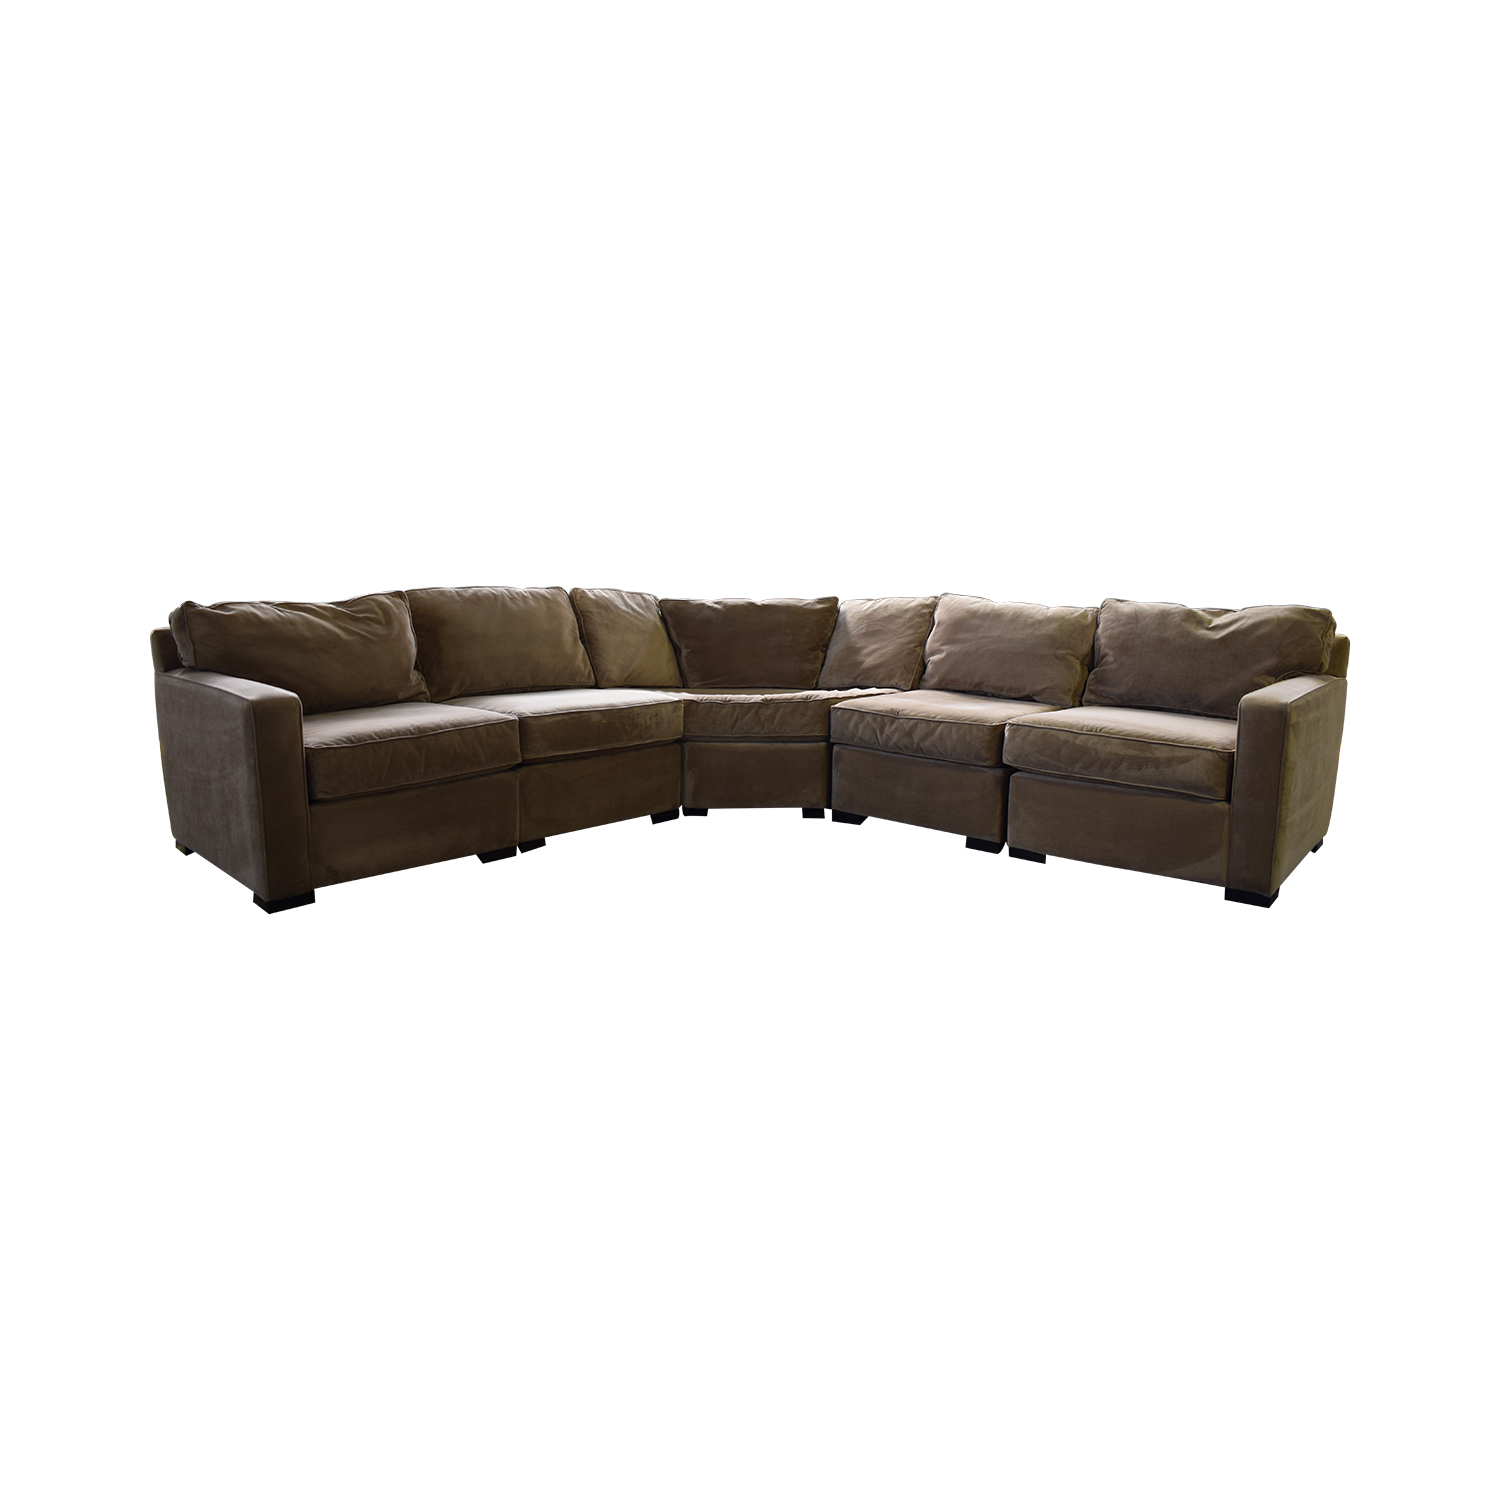 49% OFF - Macy\'s Macy\'s Corner Sectional Sofa / Sofas